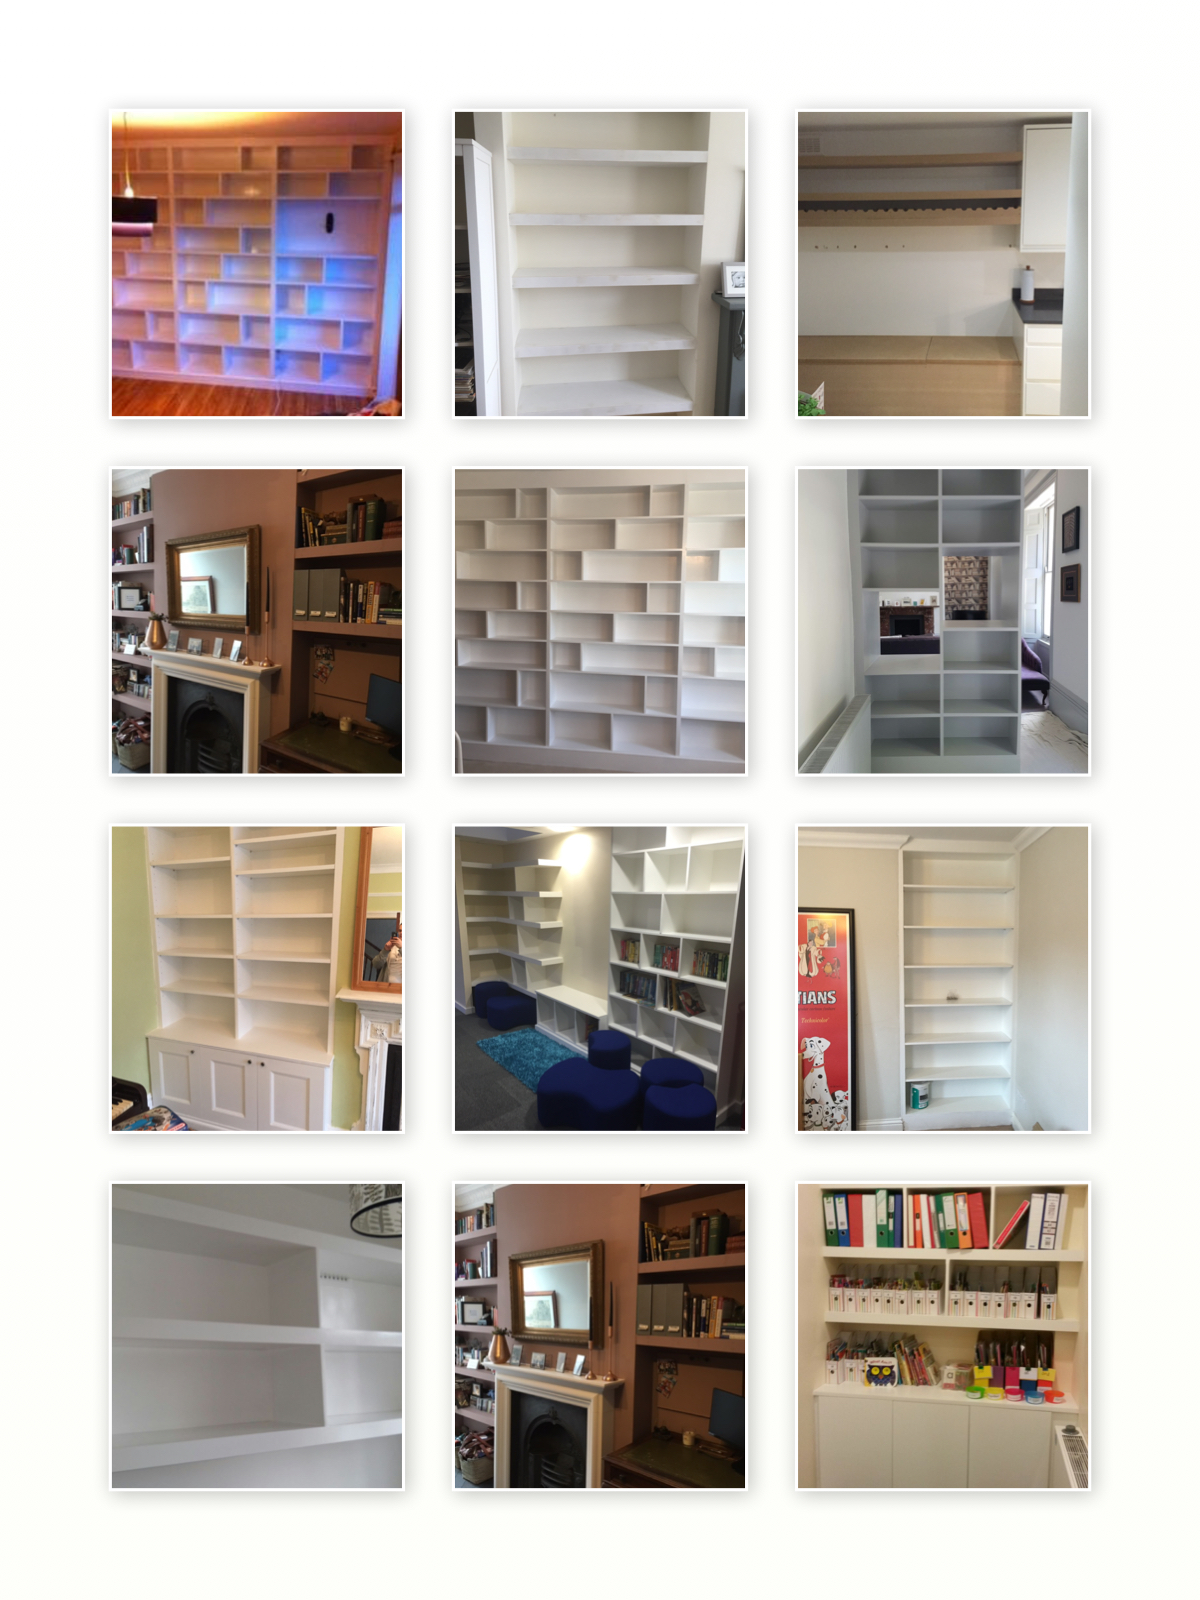 Shelving in South Norwood, West Norwood, Crystal Palace, Honor Oak, Forest Hill and South East London